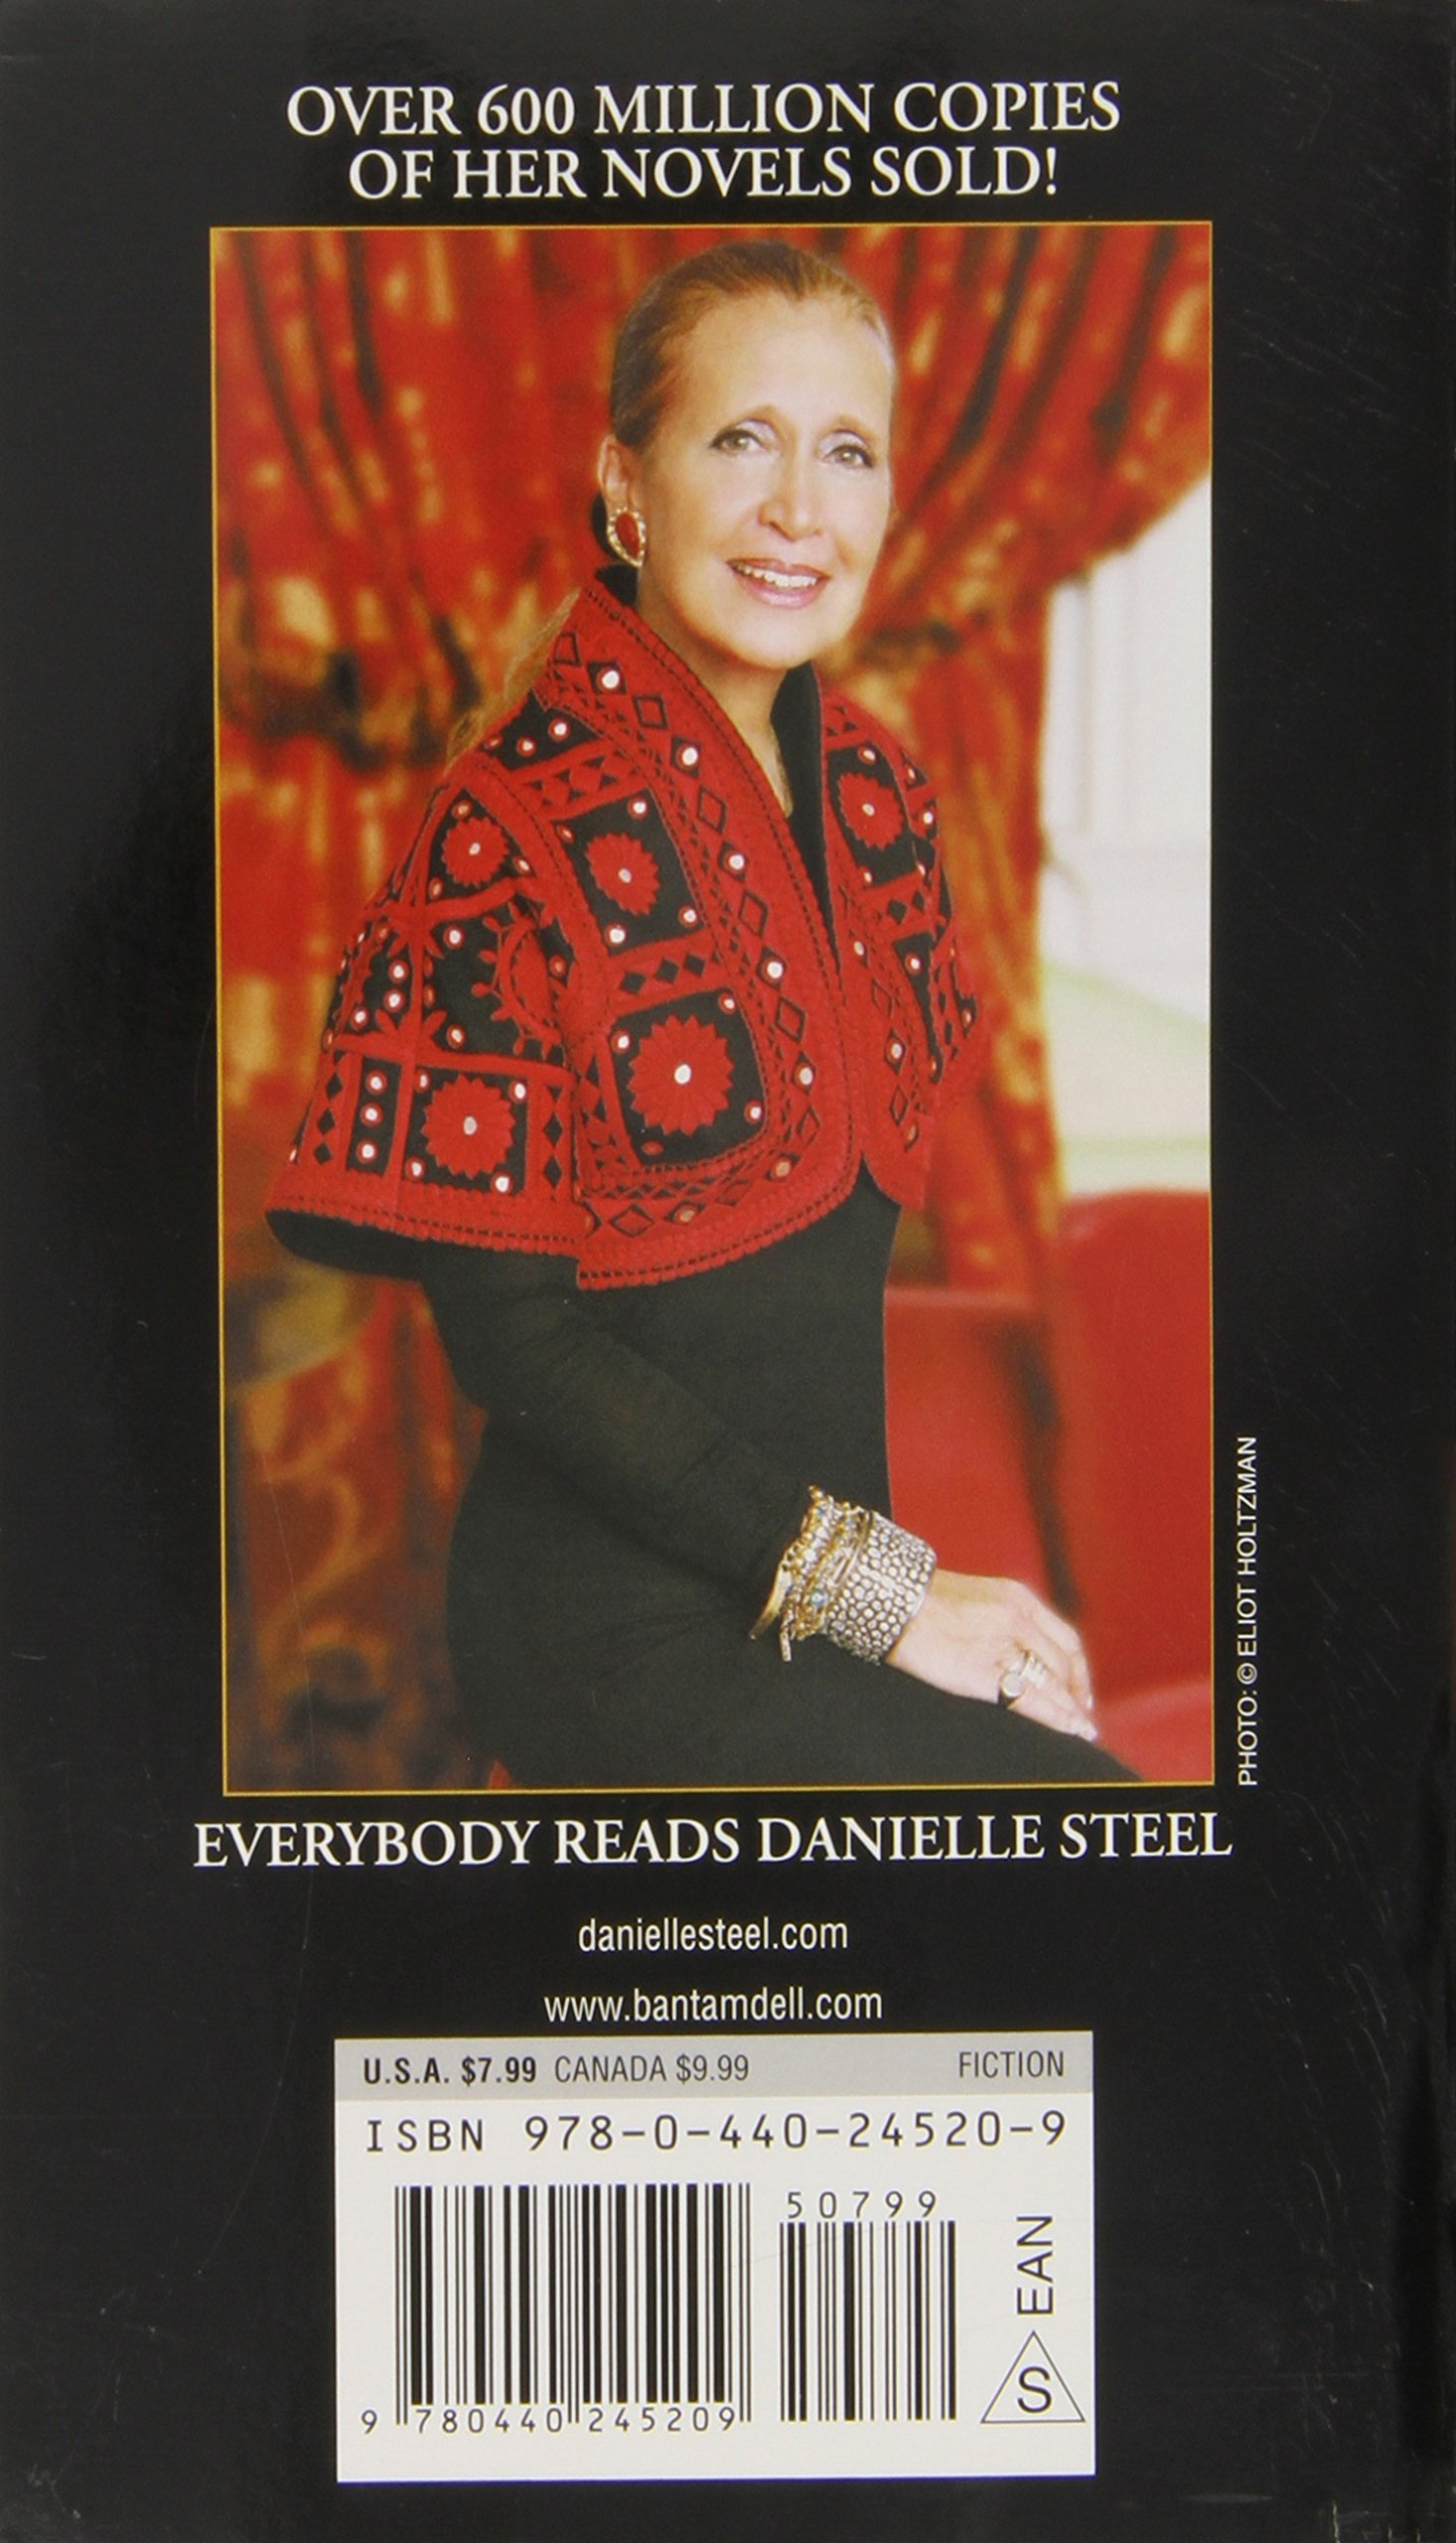 danielle steel son nick traina